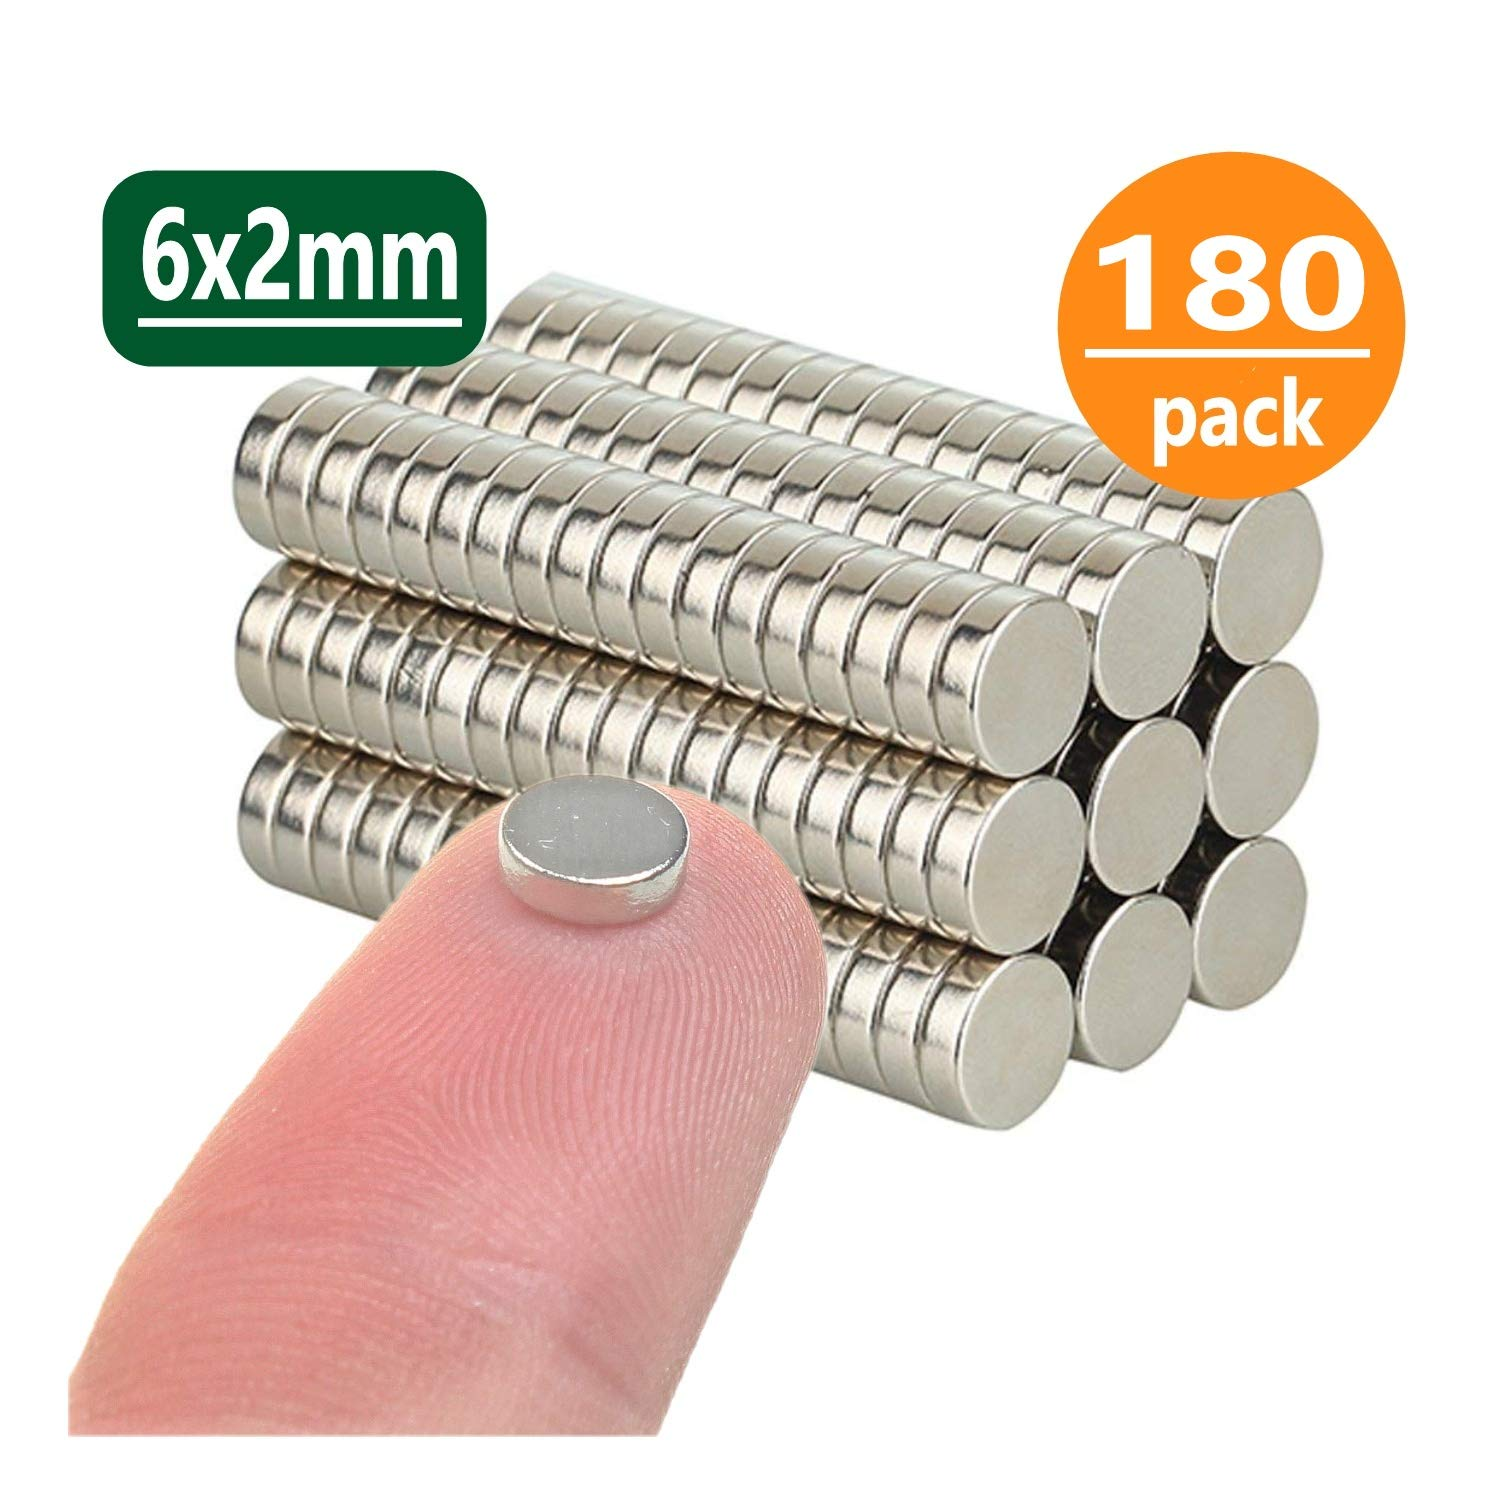 Deryun 180 Pack Refrigerators Magnets Fridge Magnets for Whiteboard